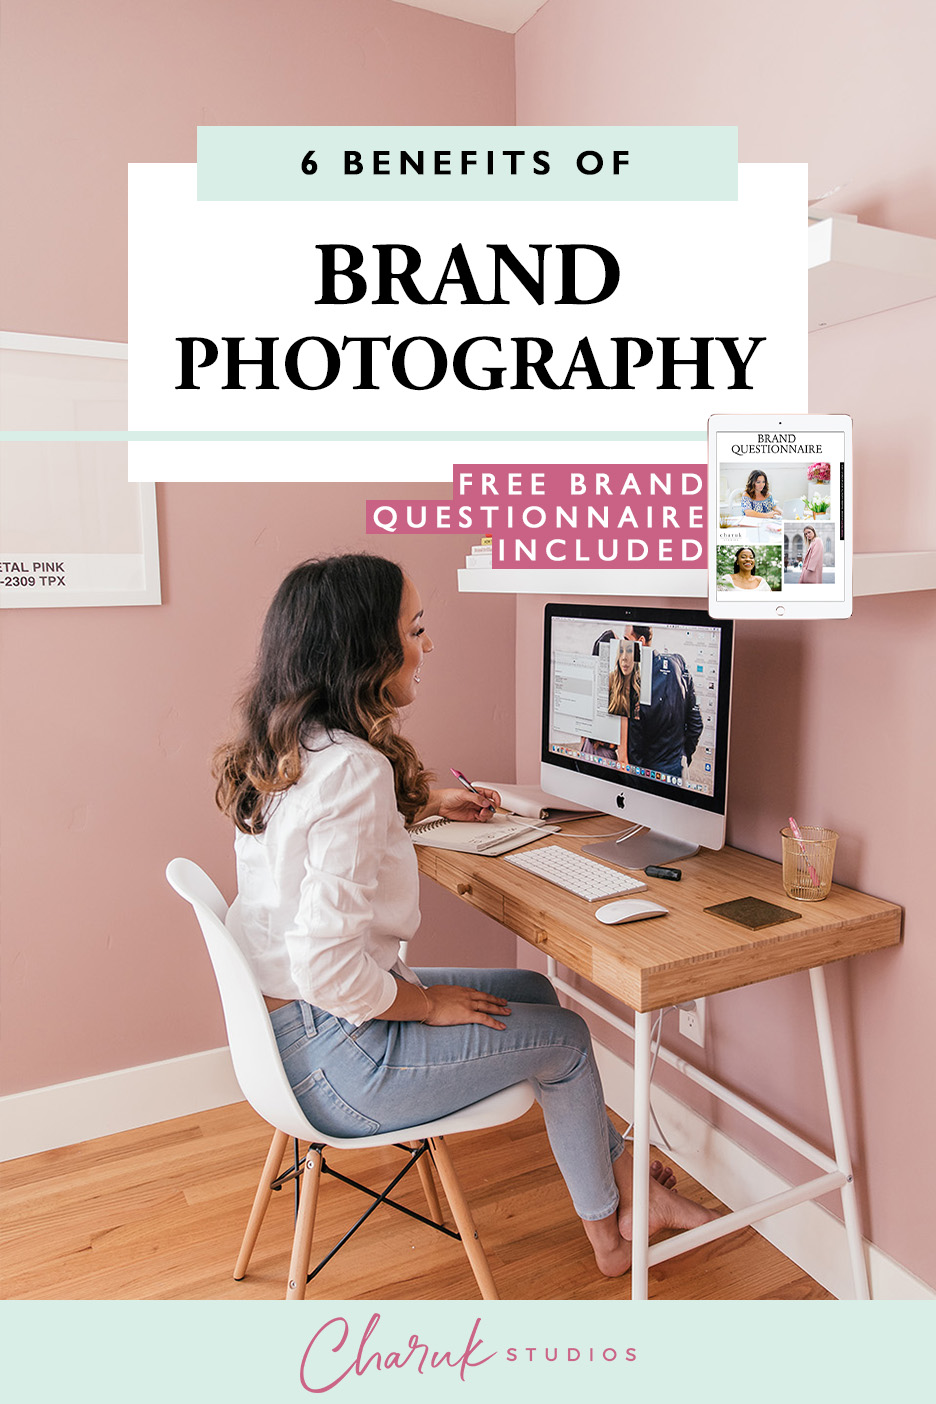 6 Benefits of brand photography.jpg